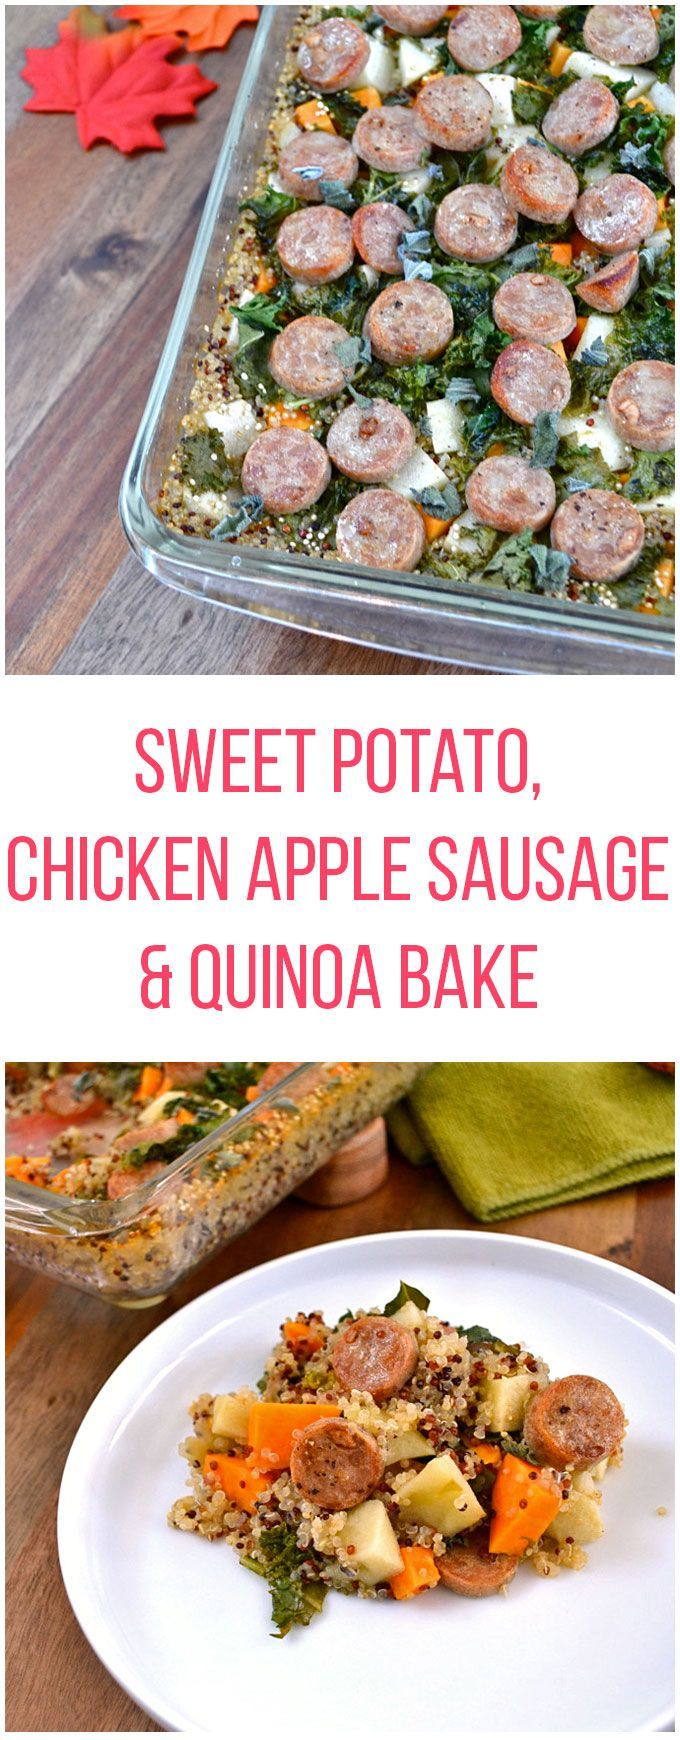 Sweet Potato & Chicken Apple Sausage Quinoa Bake